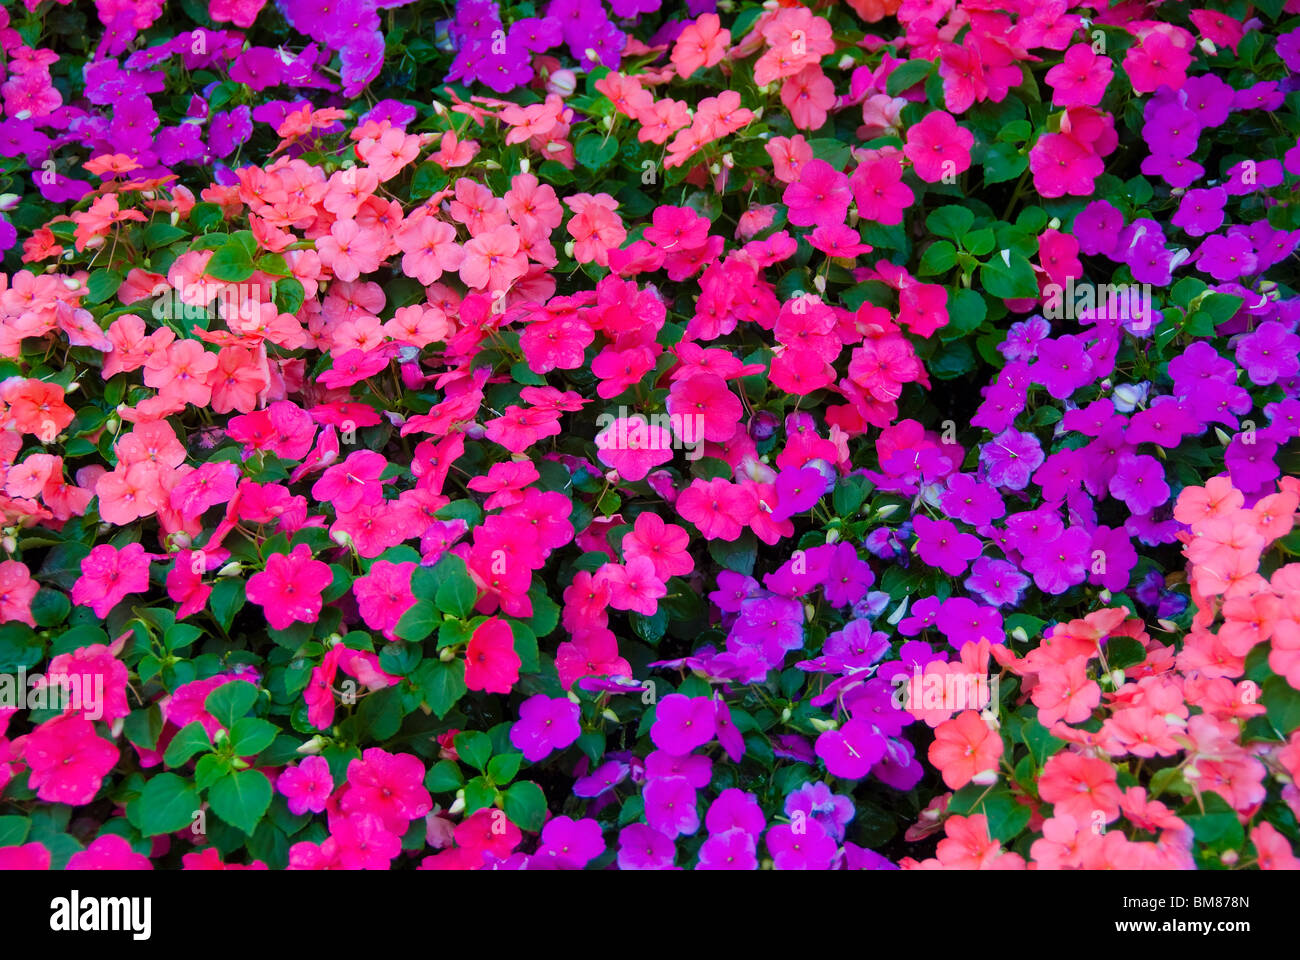 Impatiens flowers in sidewalk planters on Las Olas Boulevard in city center of Fort Lauderdale, Florida, USA - Stock Image